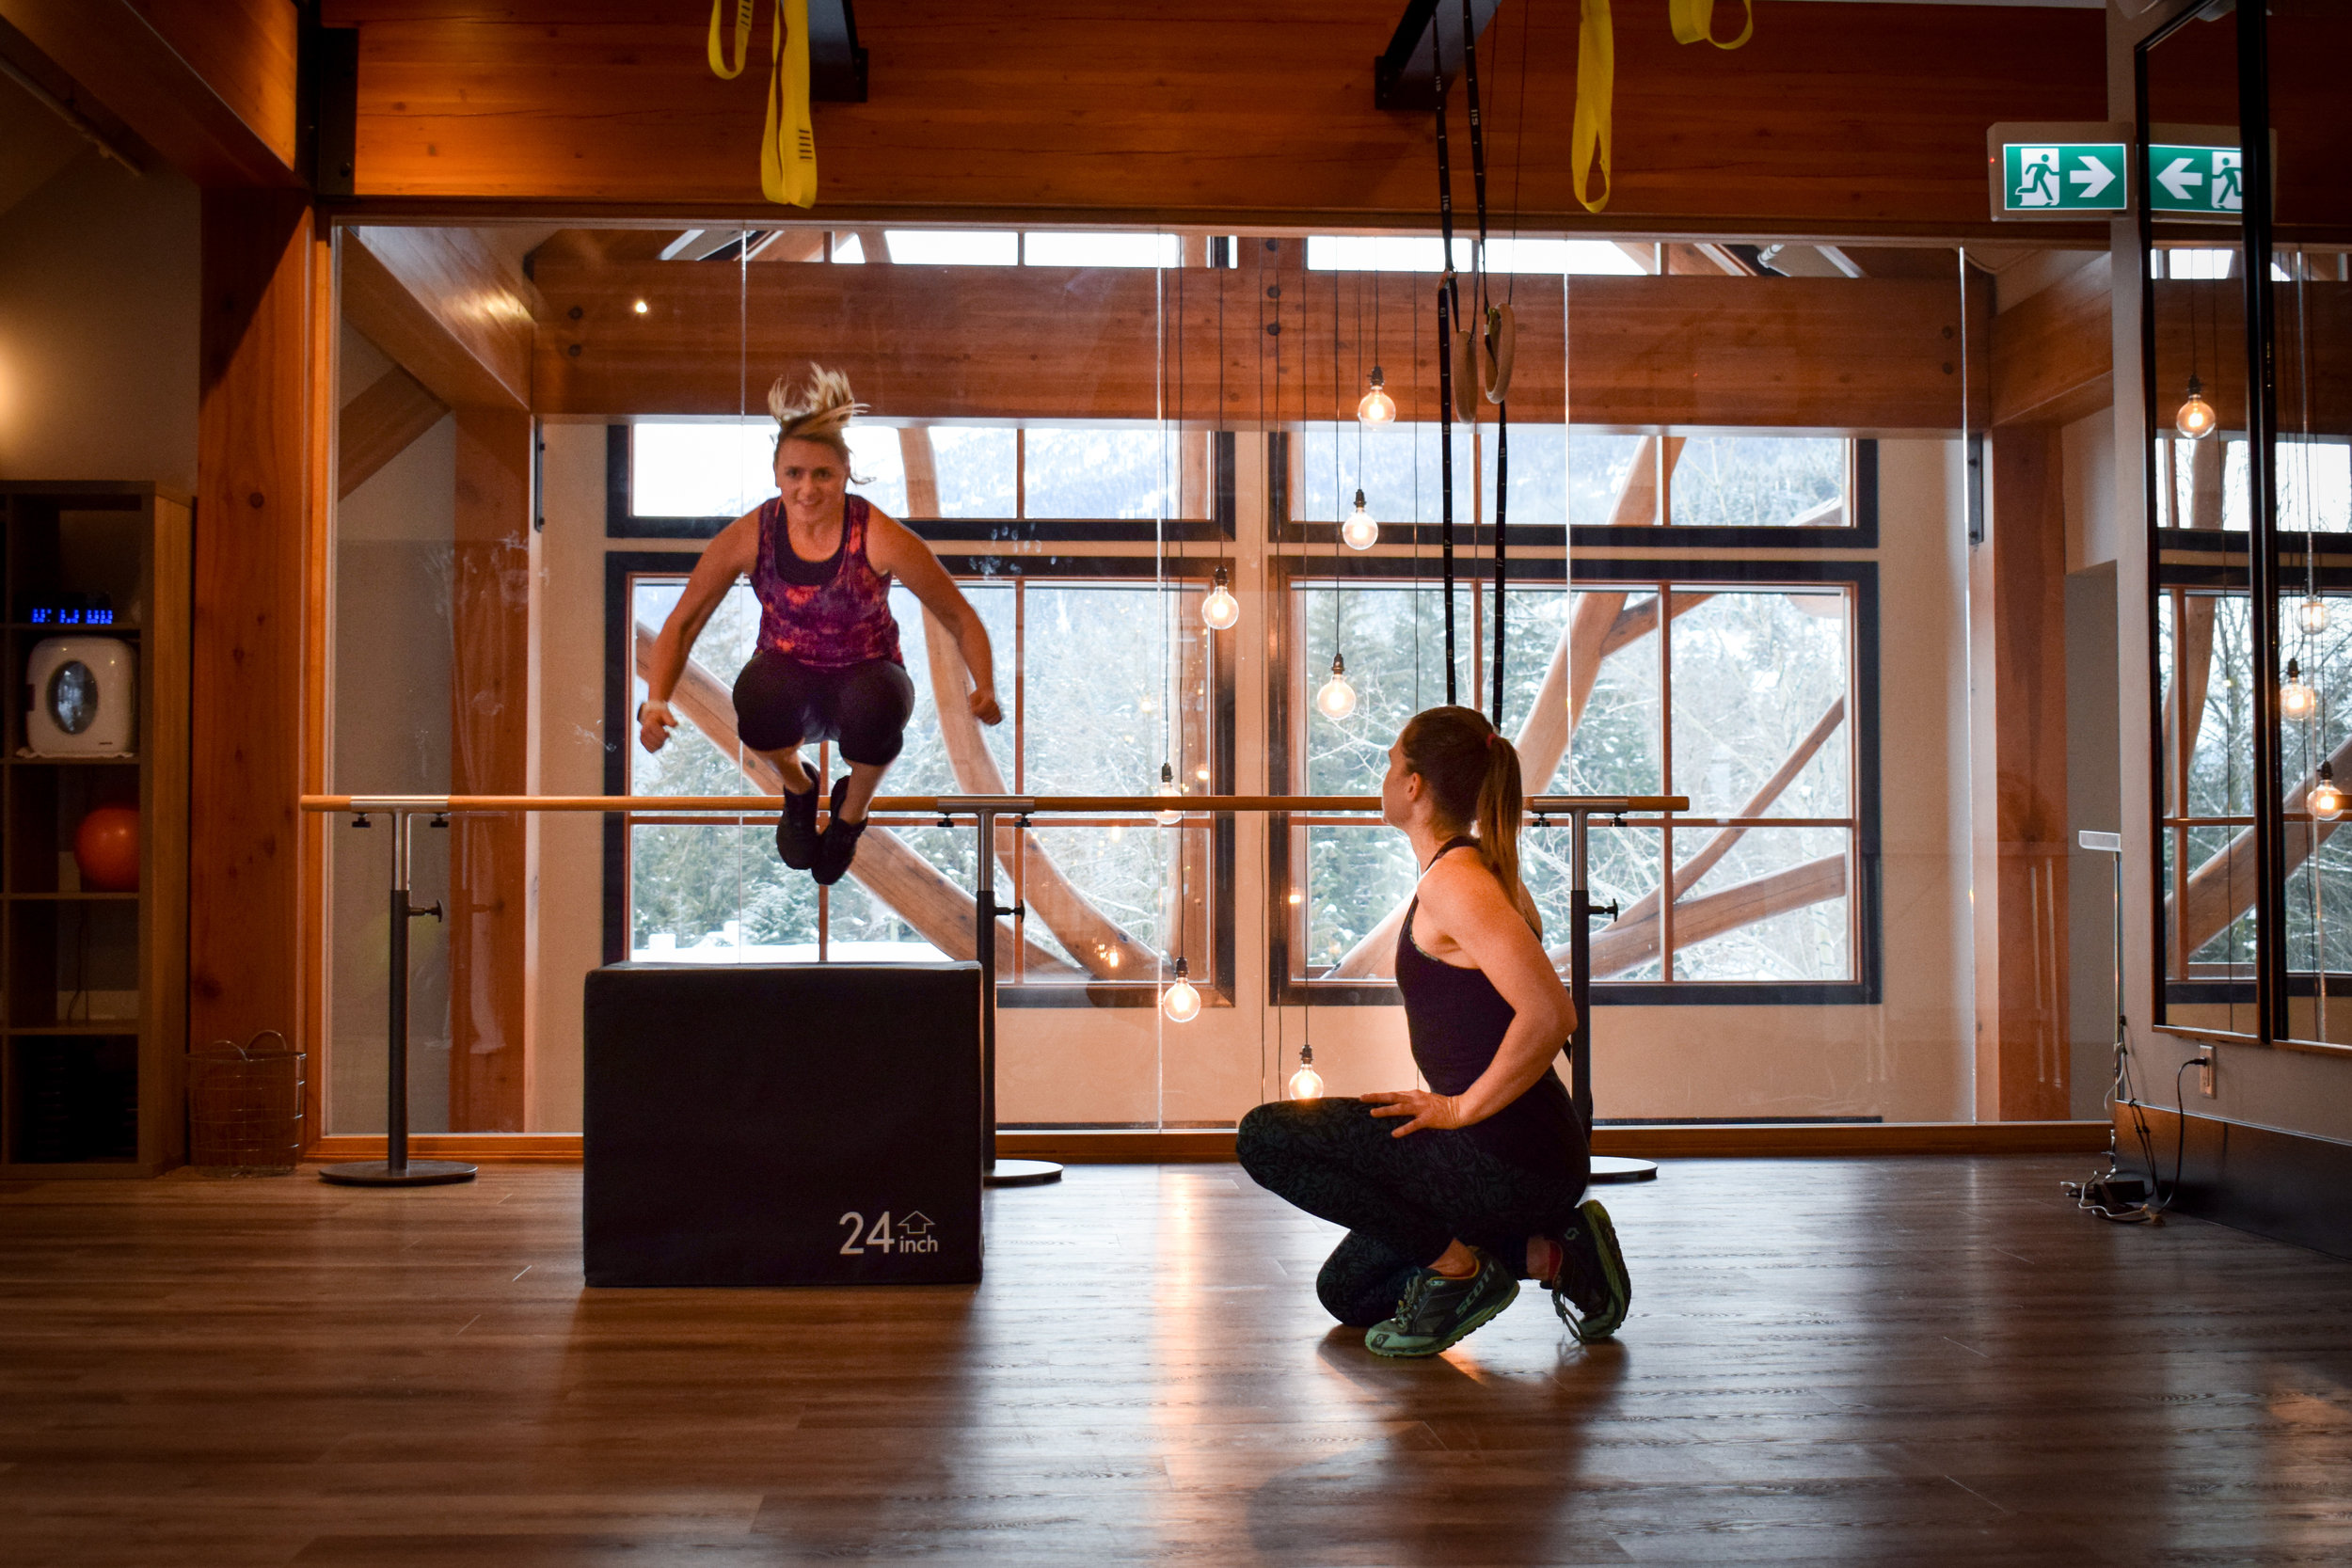 It's not all about snow. I spent a good amount of time getting strong in the gym with Emma. Photo: Megan Wilson